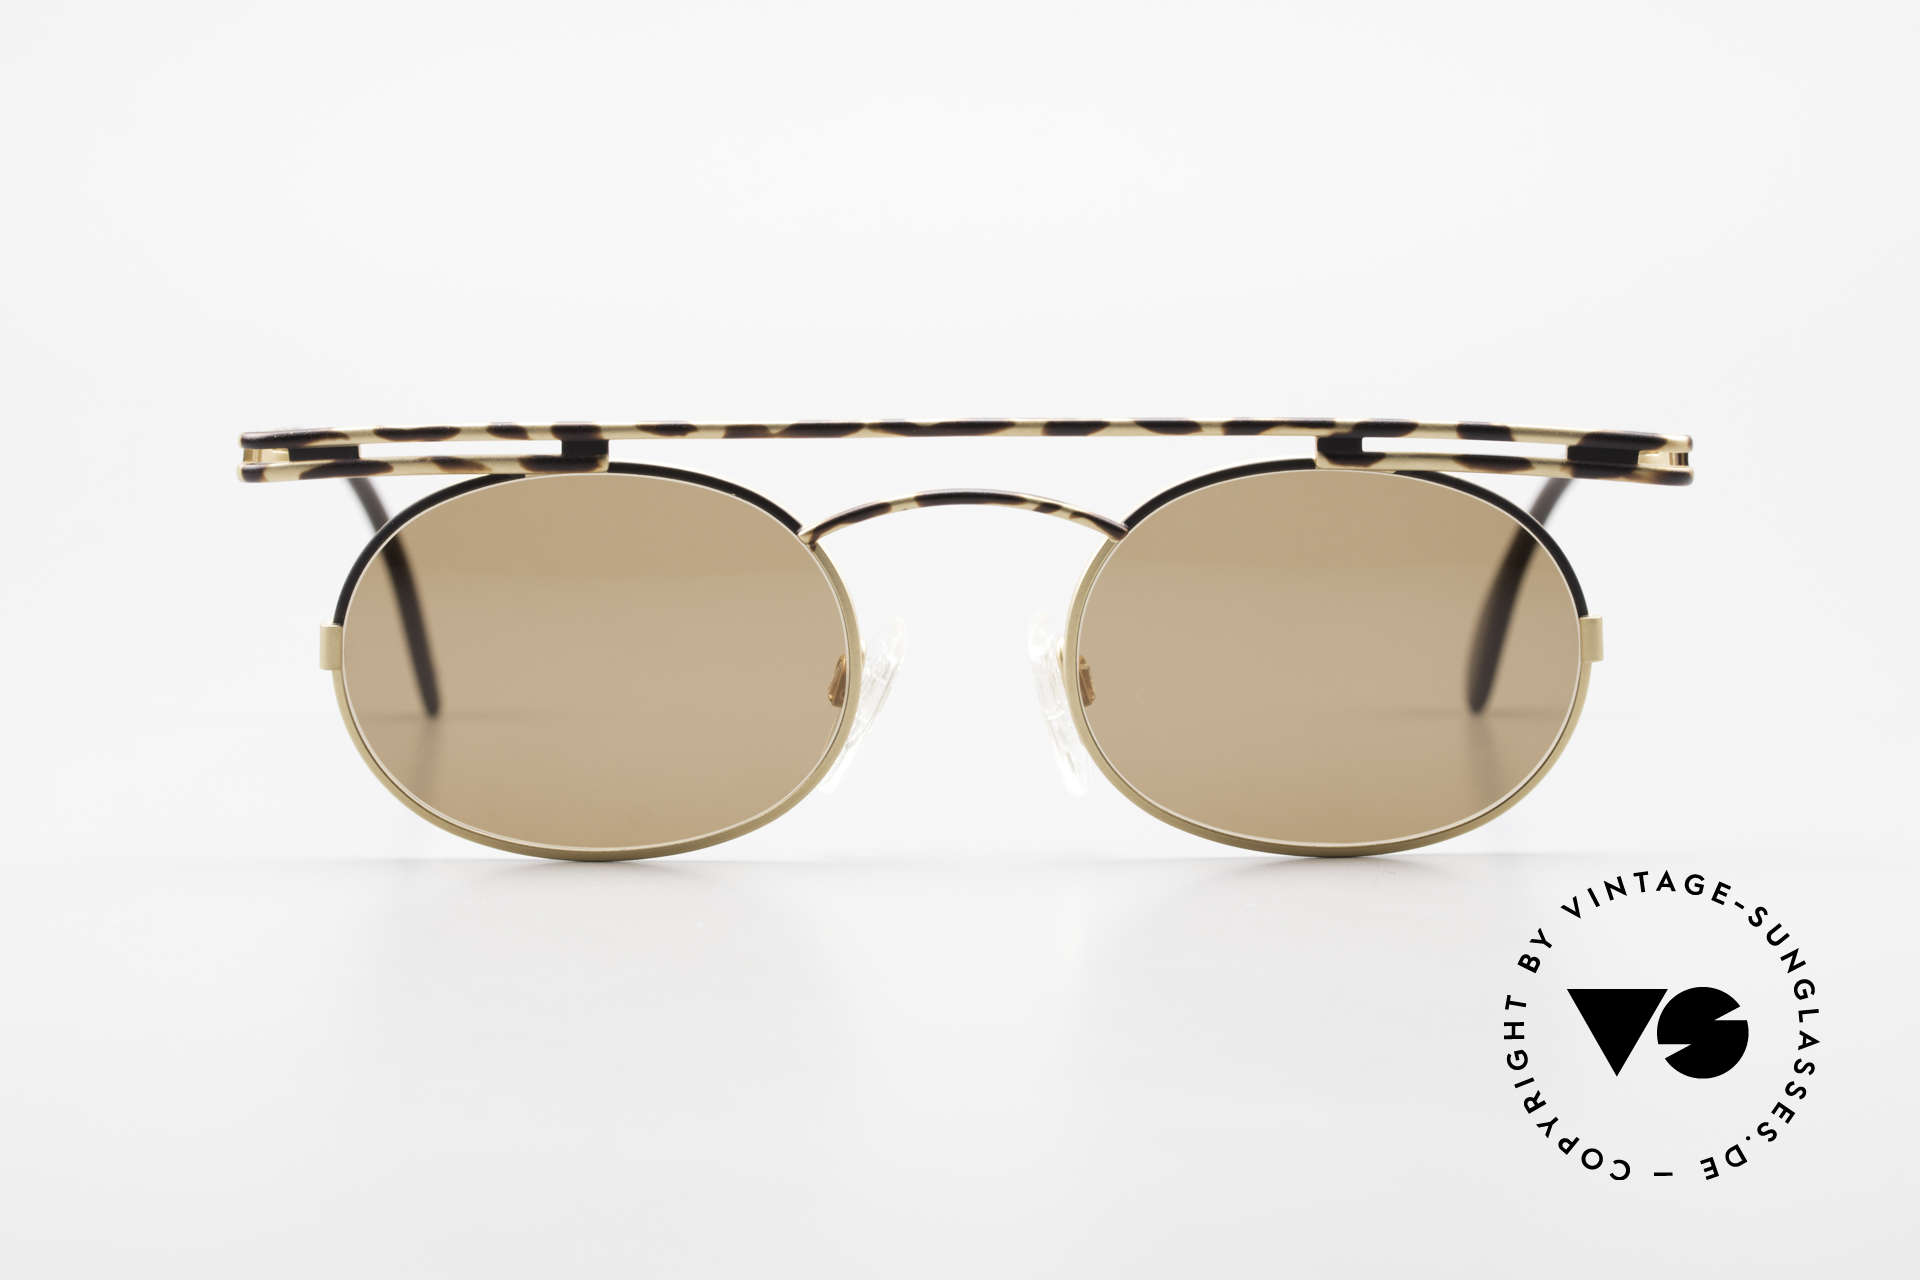 Cazal 761 Rare Old Cazal 90's Sunglasses, angular & round at the same time; a real eye-catcher, Made for Men and Women